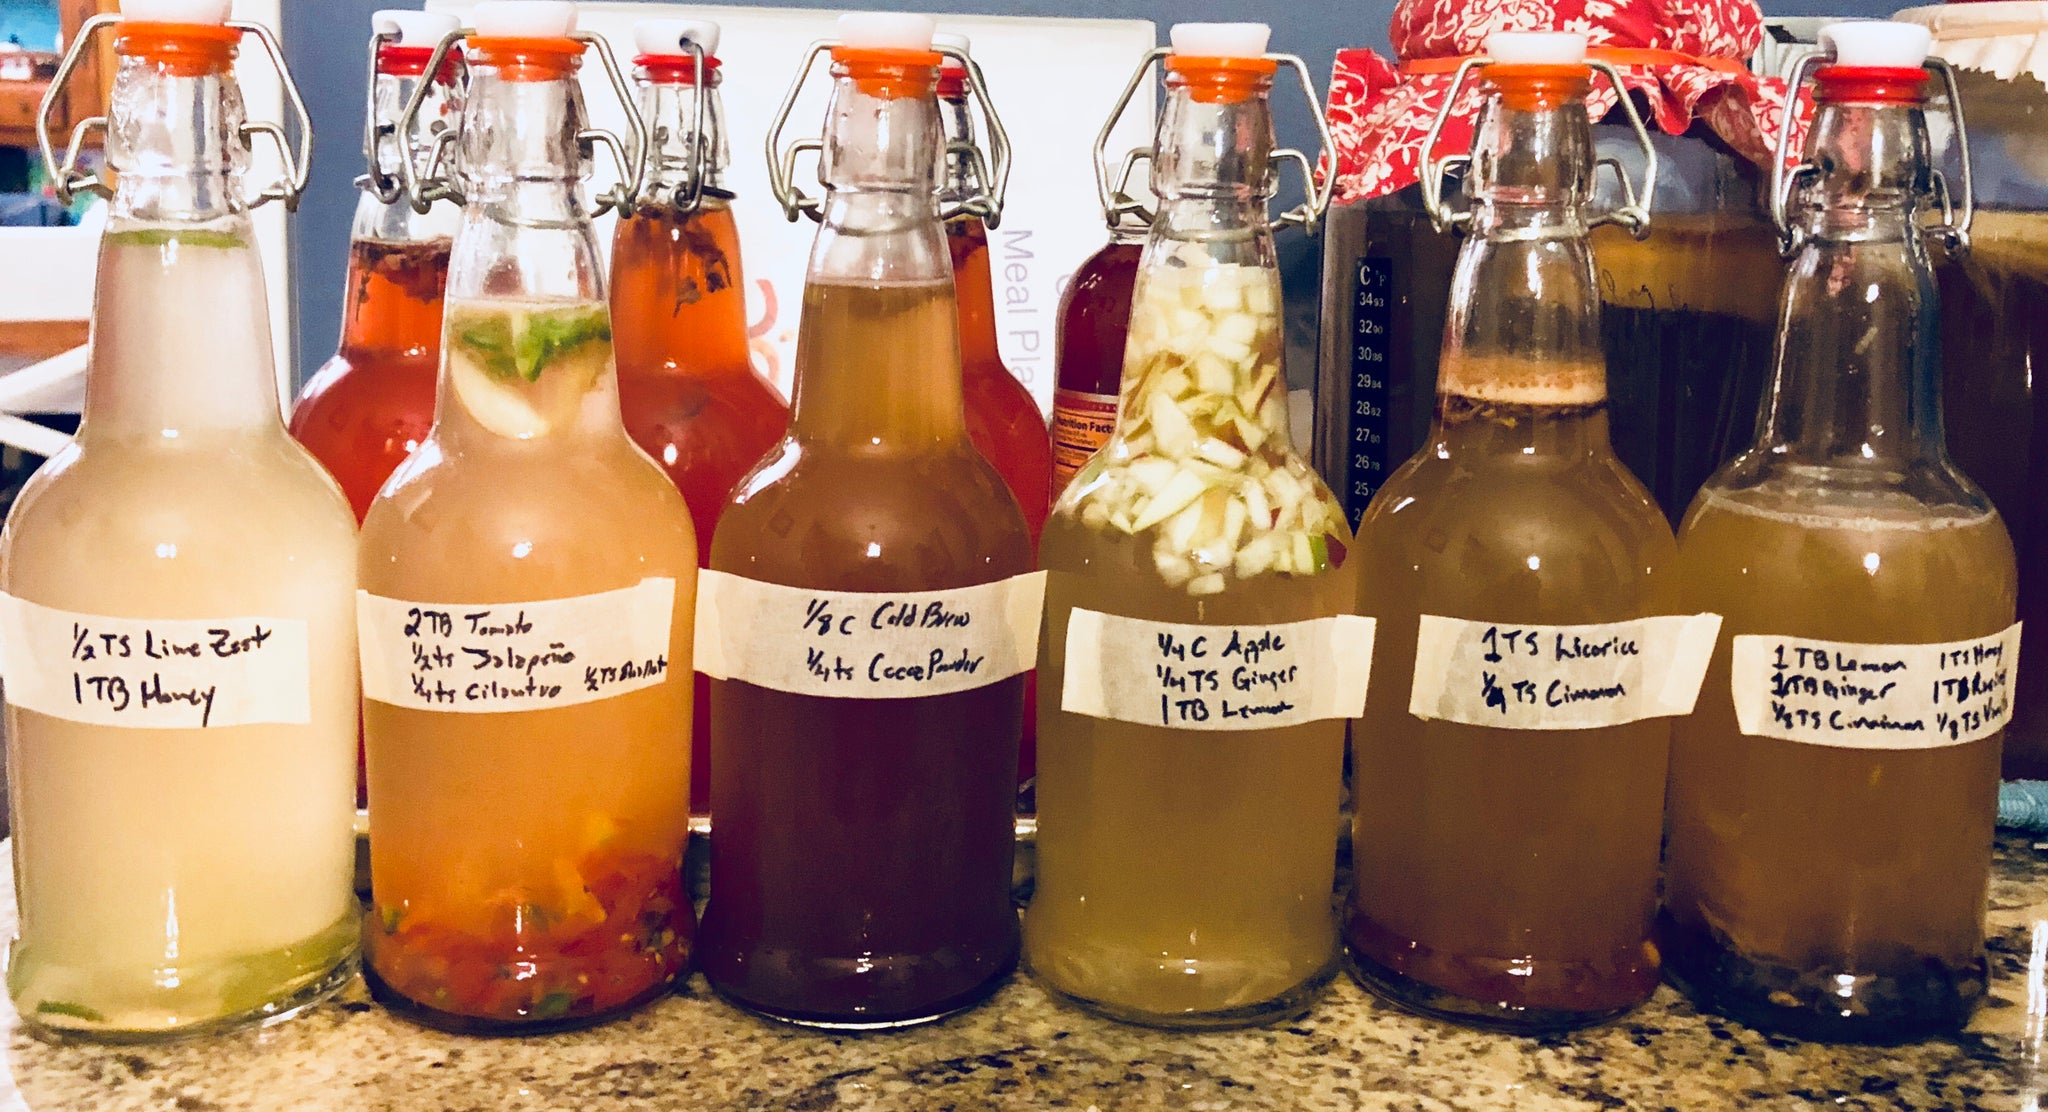 Homemade Kombucha, Kefir, & Other Fermented Drinks - 90 Min Intensive Workshop